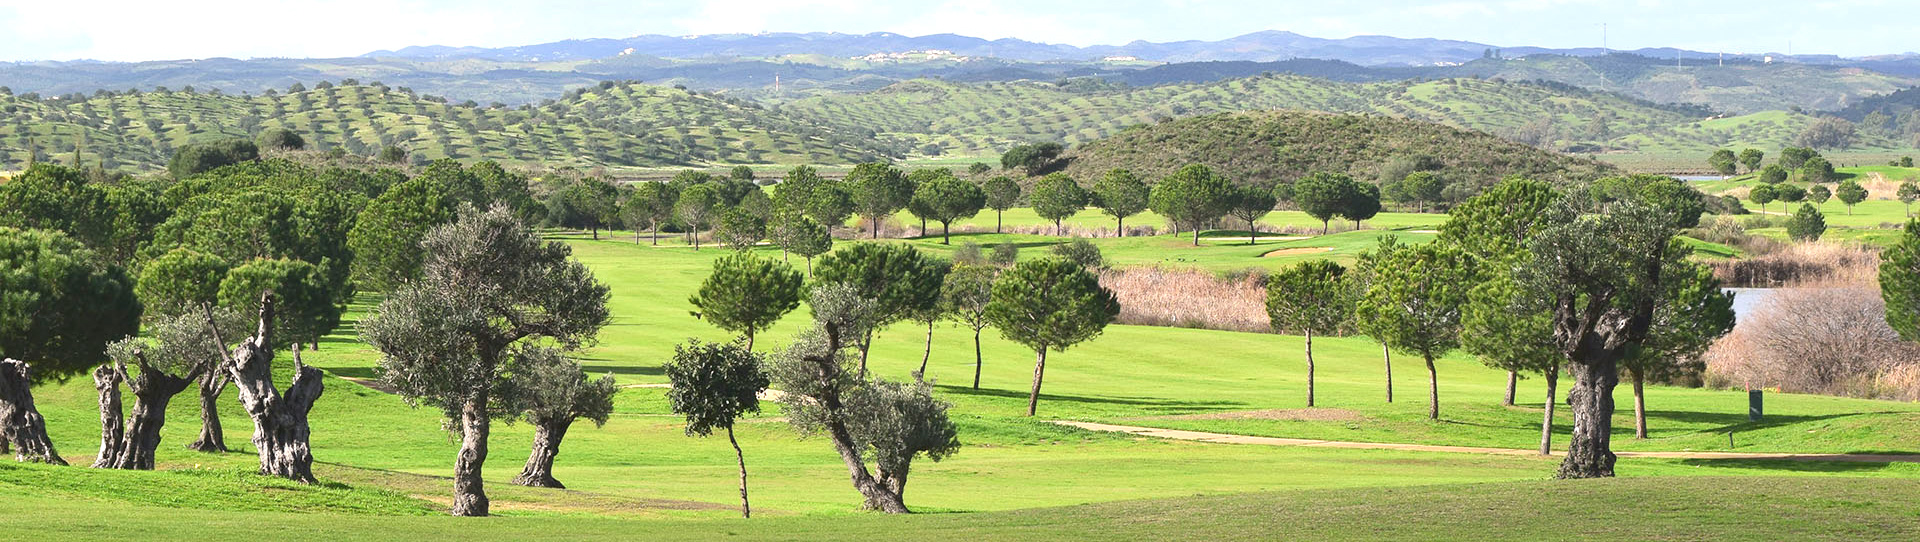 Valle Guadiana Links (Spain) - Photo 1